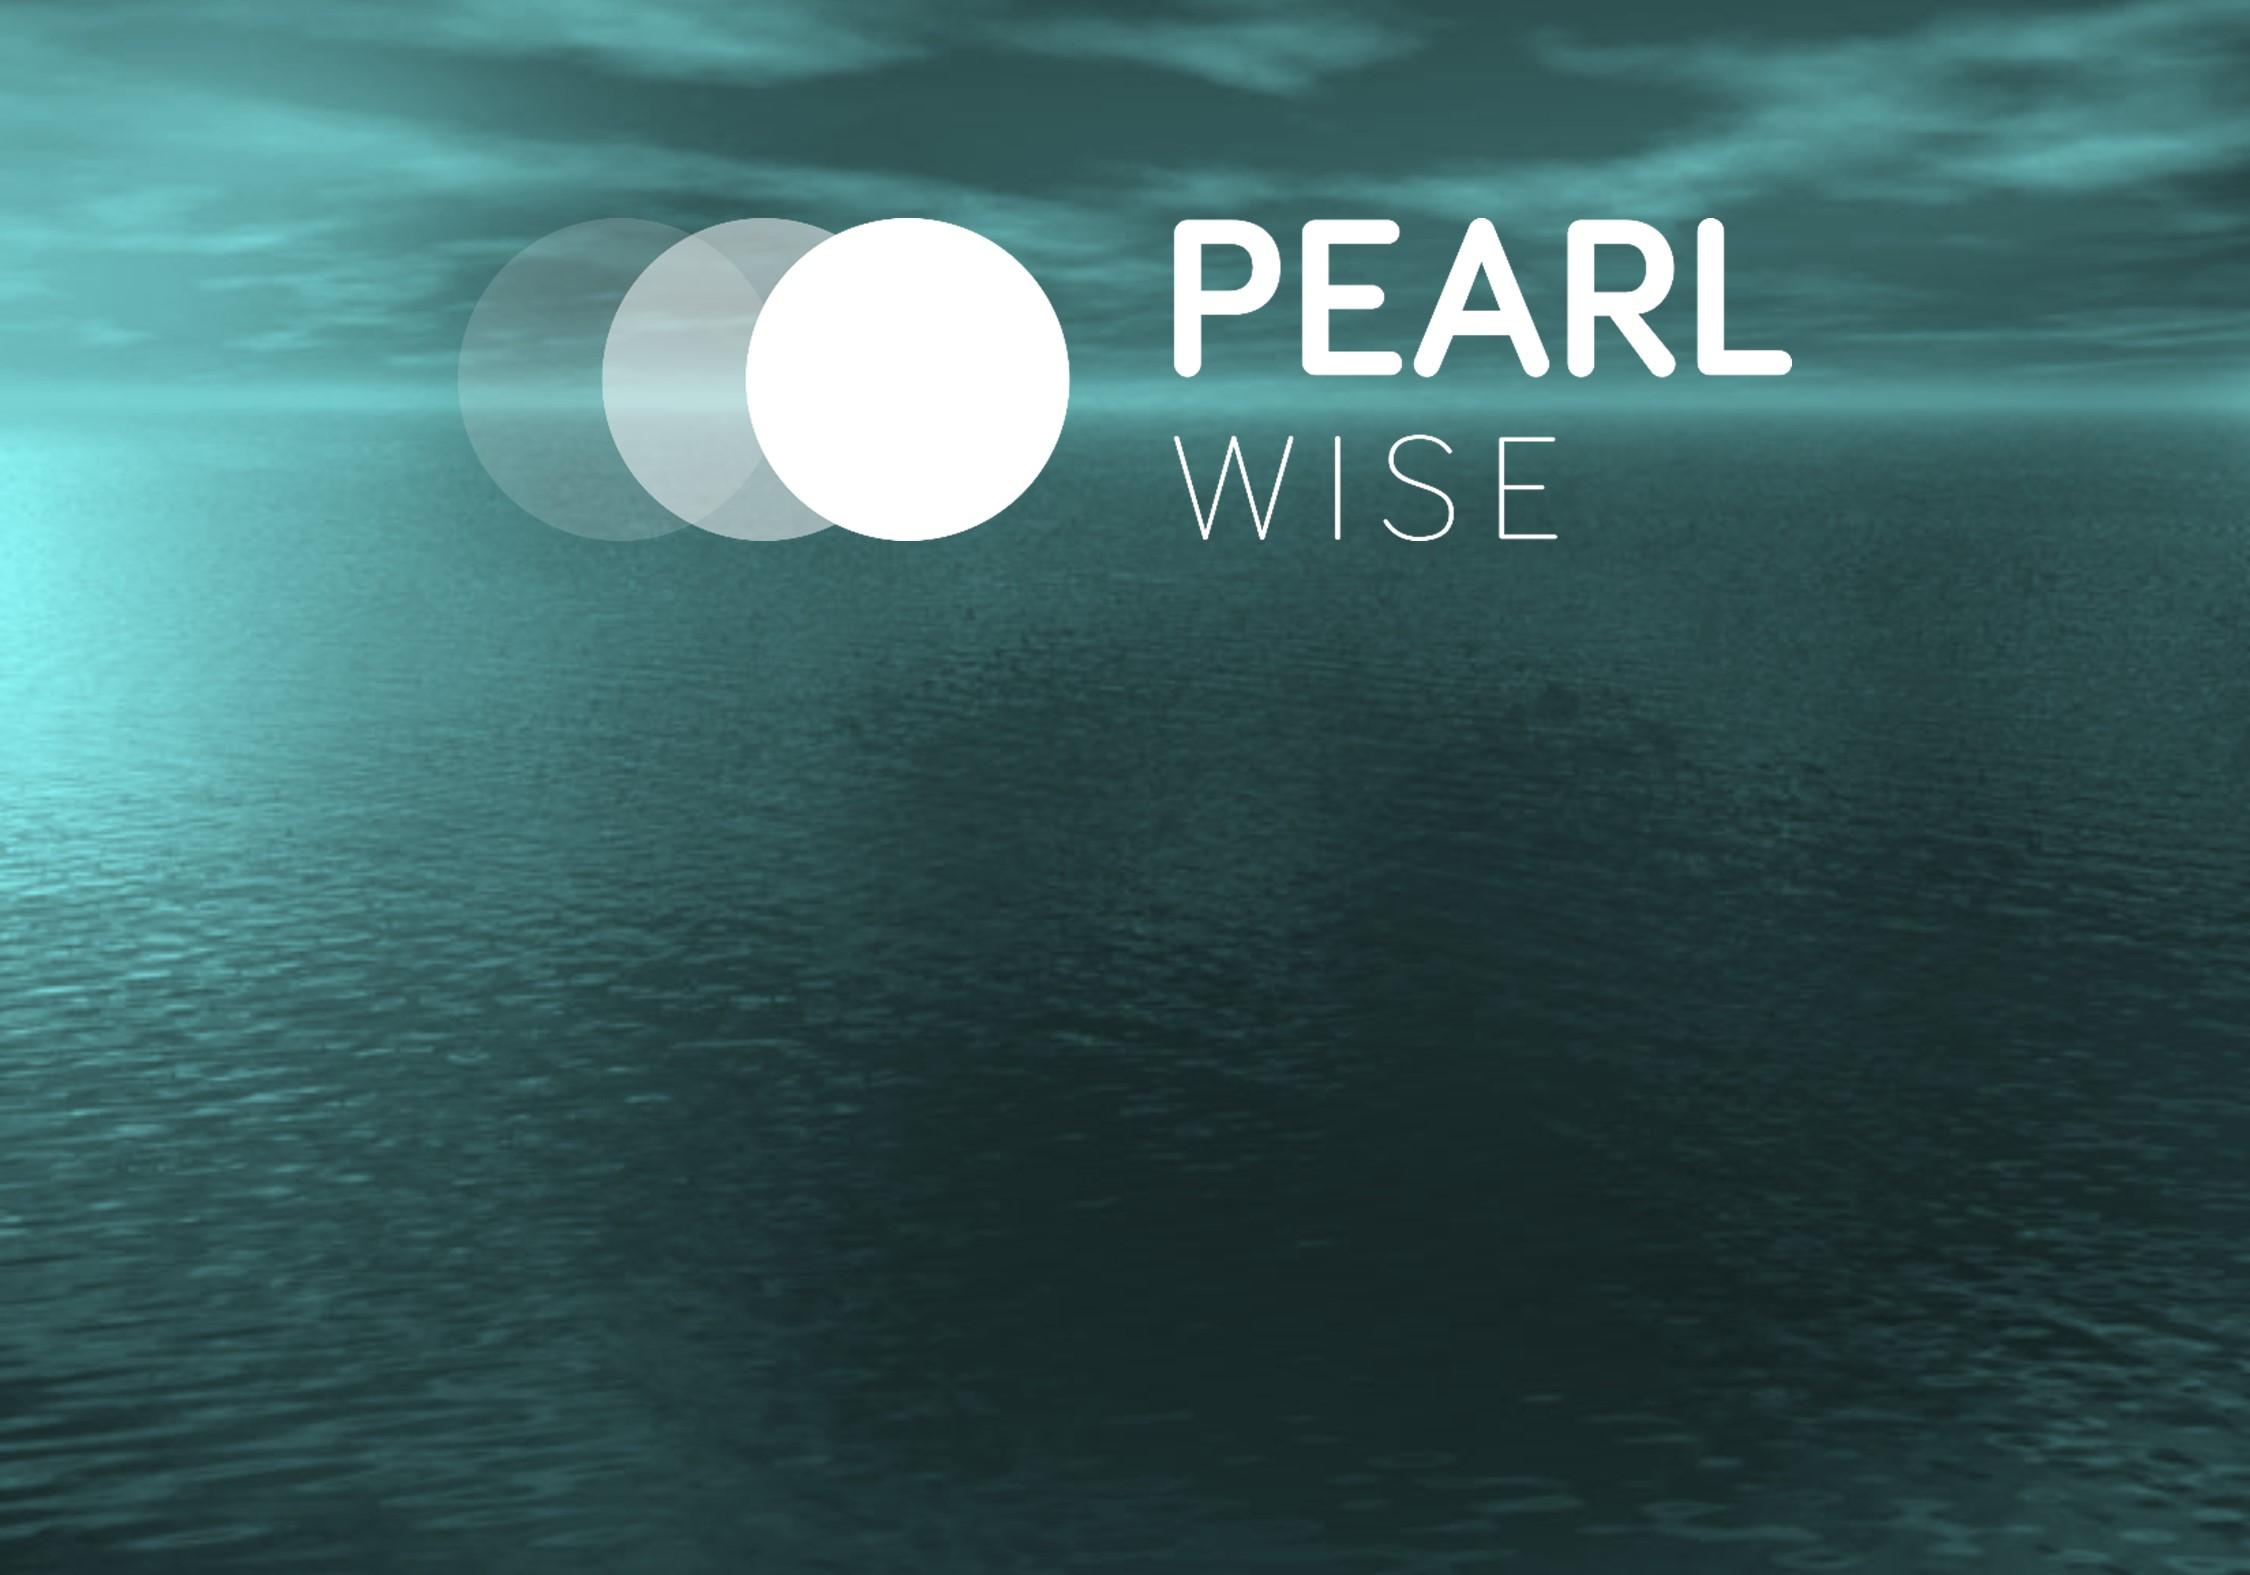 pearl wise